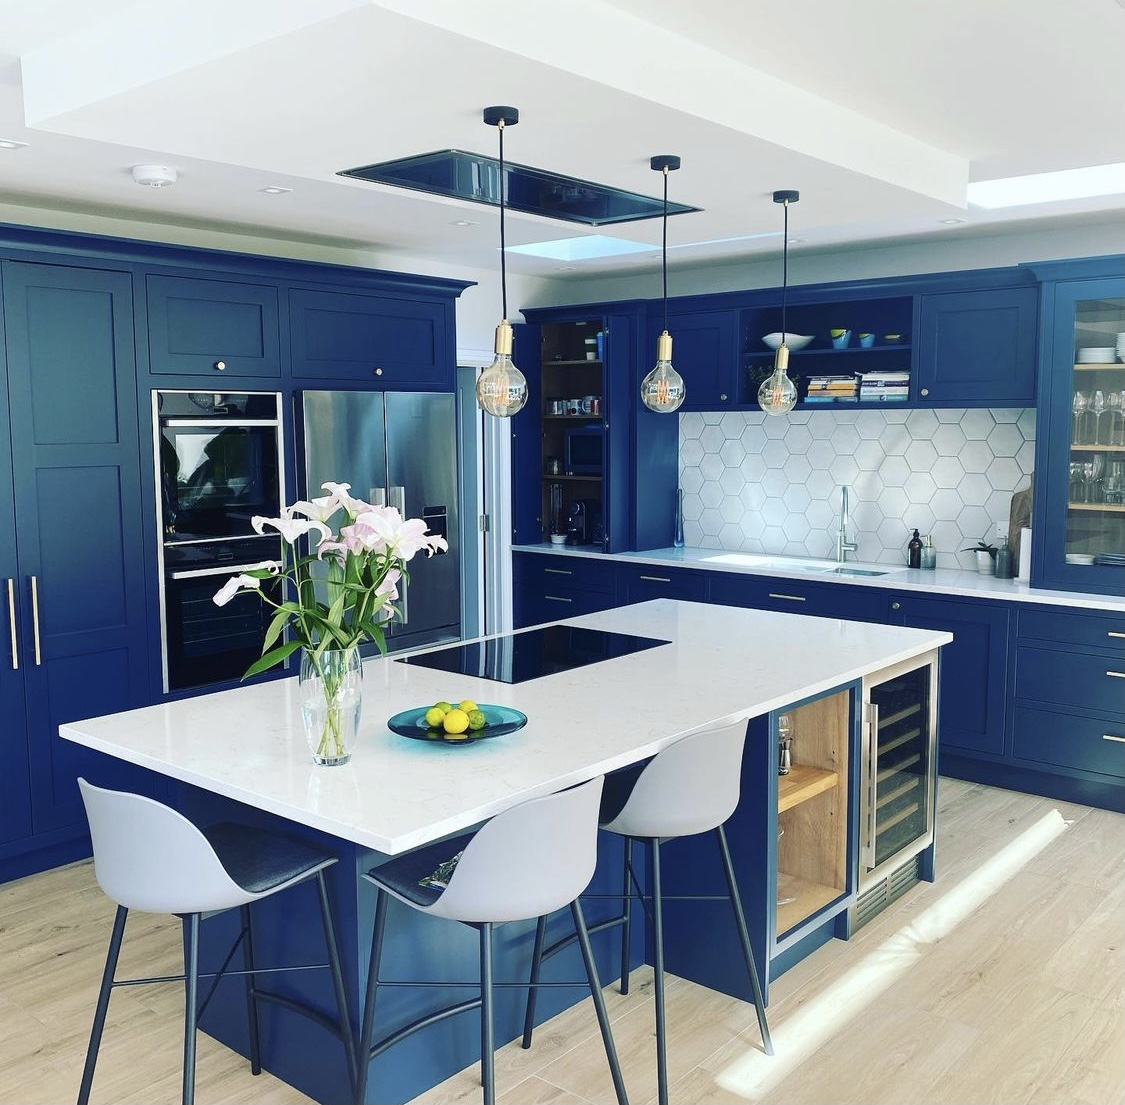 A lovely kitchen designed by Lucas Grant Kitchens which has their Searle range in frame shaker and our Lyra worktops by Silestone by Cosentino . A lovely design well done all 🤩 #quartz #quartzworktops #interiors #worktops #lyra #silestone #fabrication #quartzkitchens #teamwork